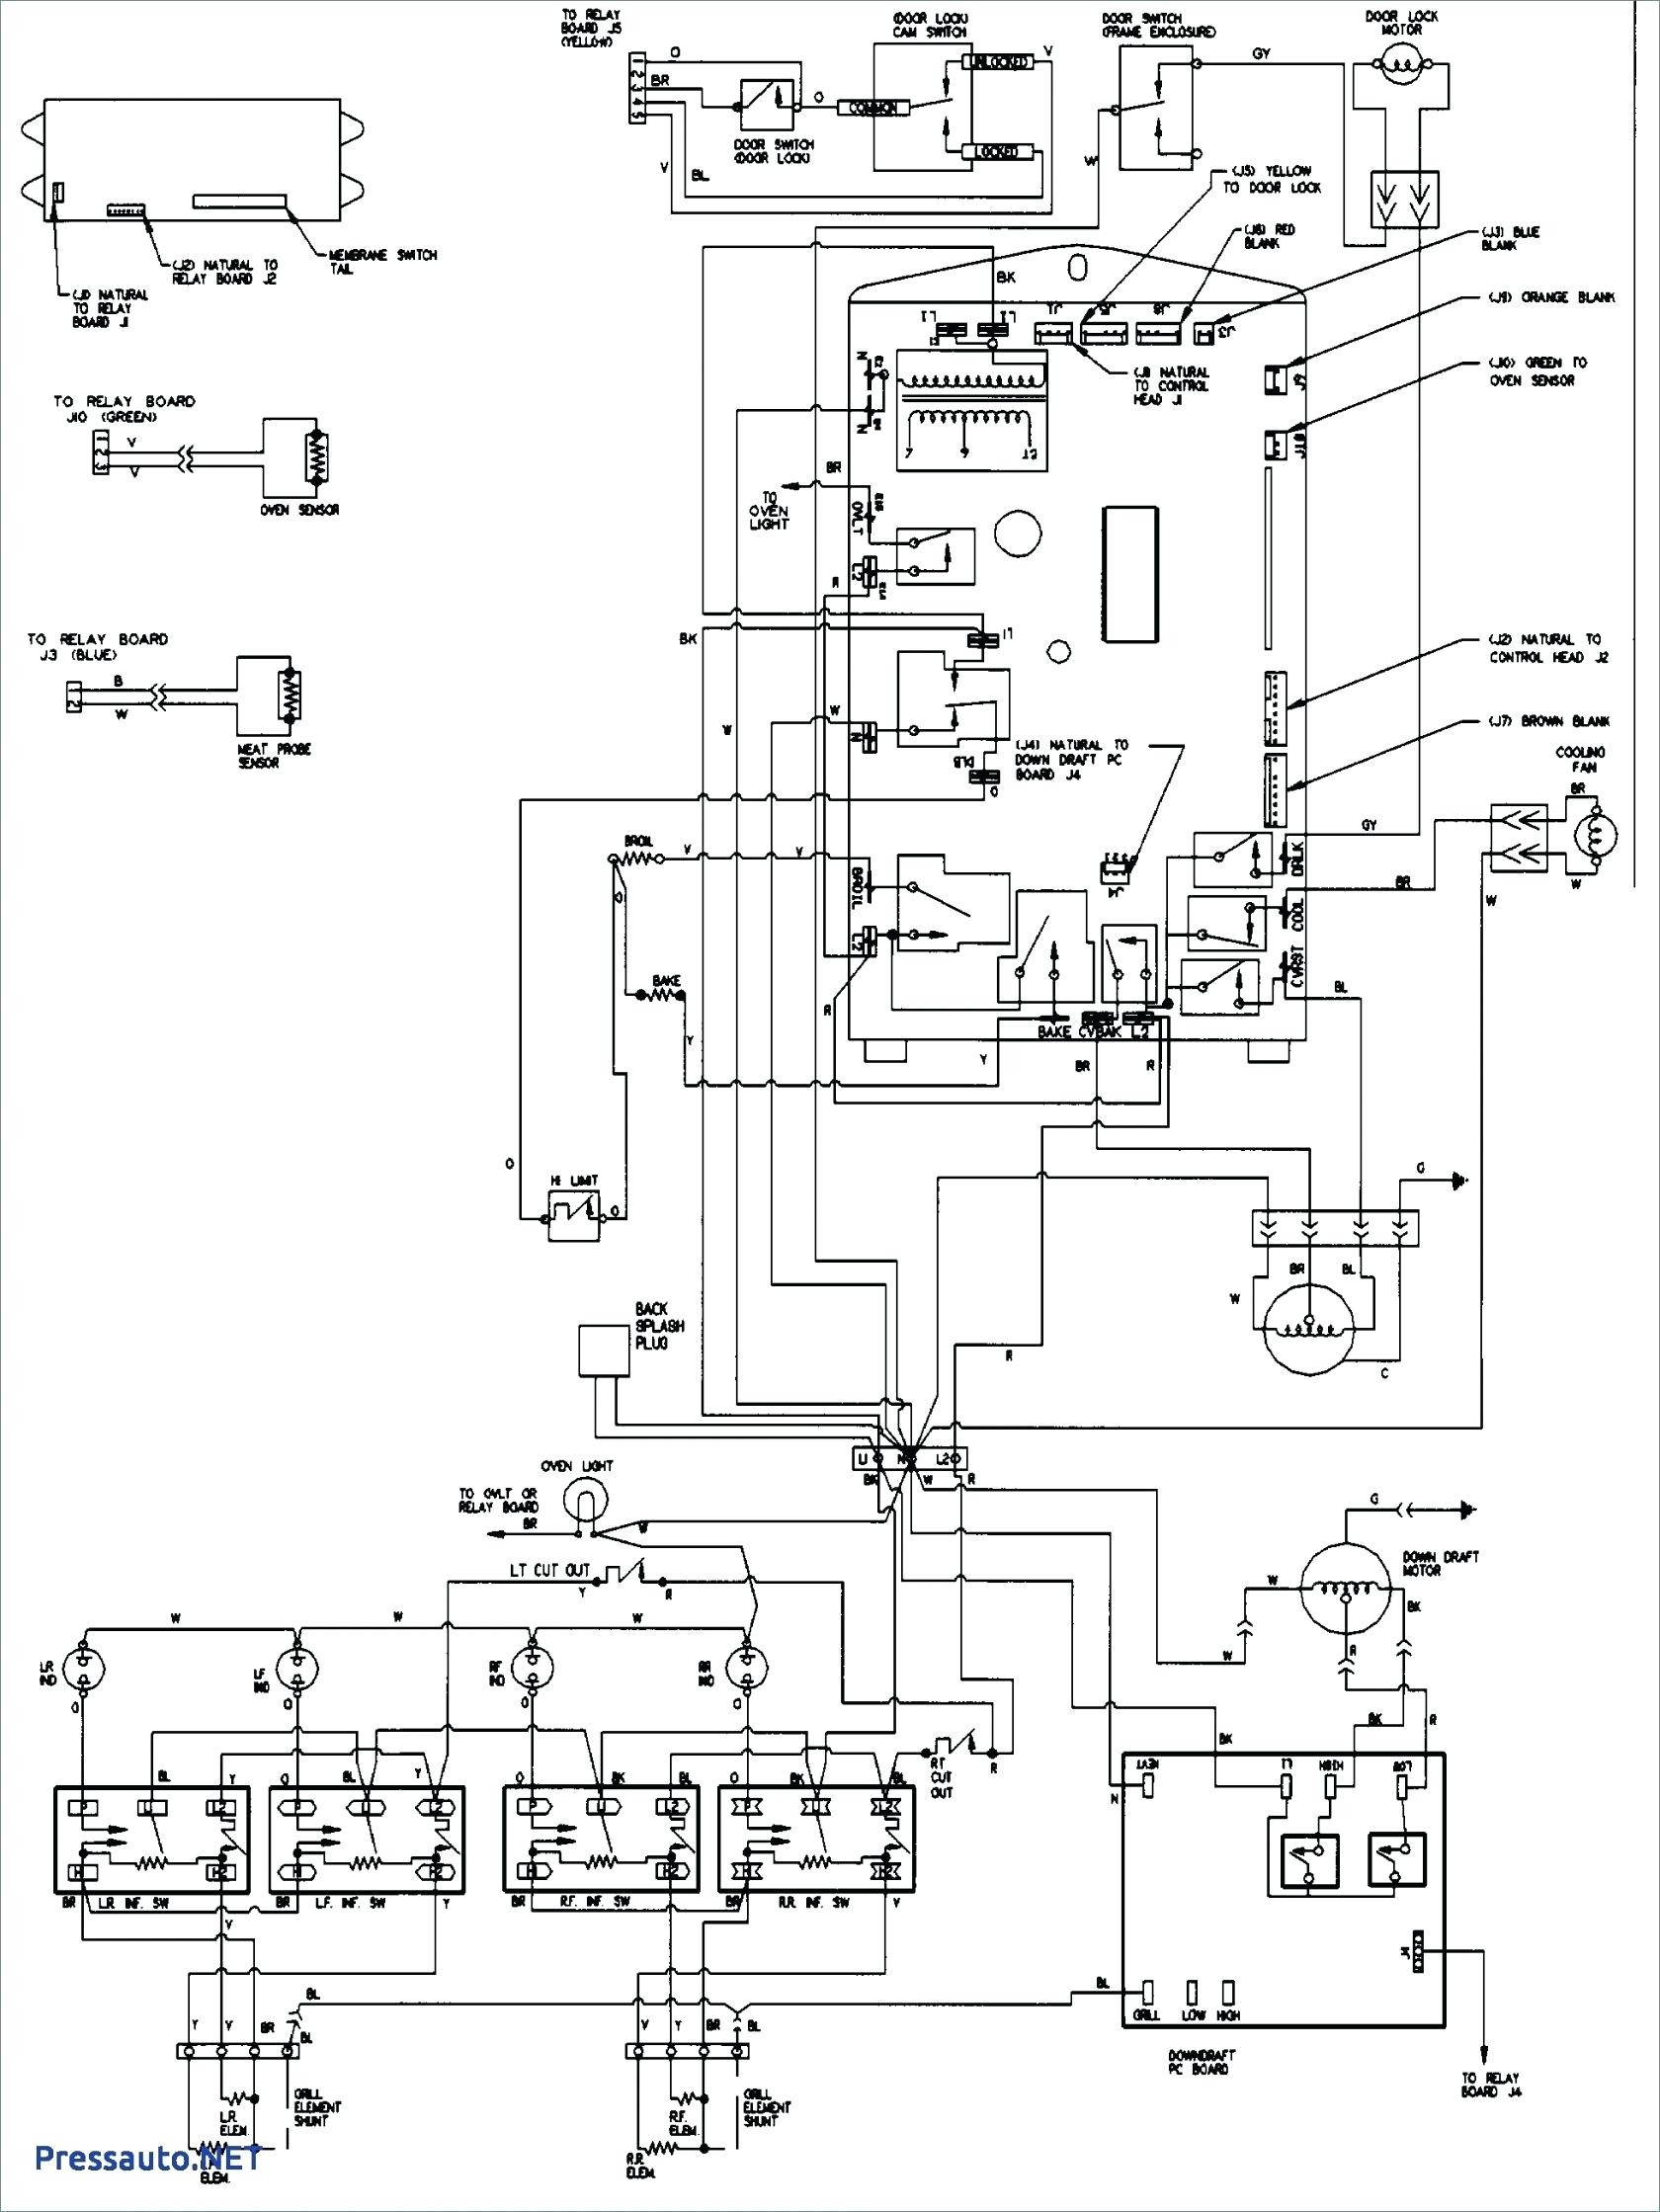 lennox furnace thermostat wiring diagram